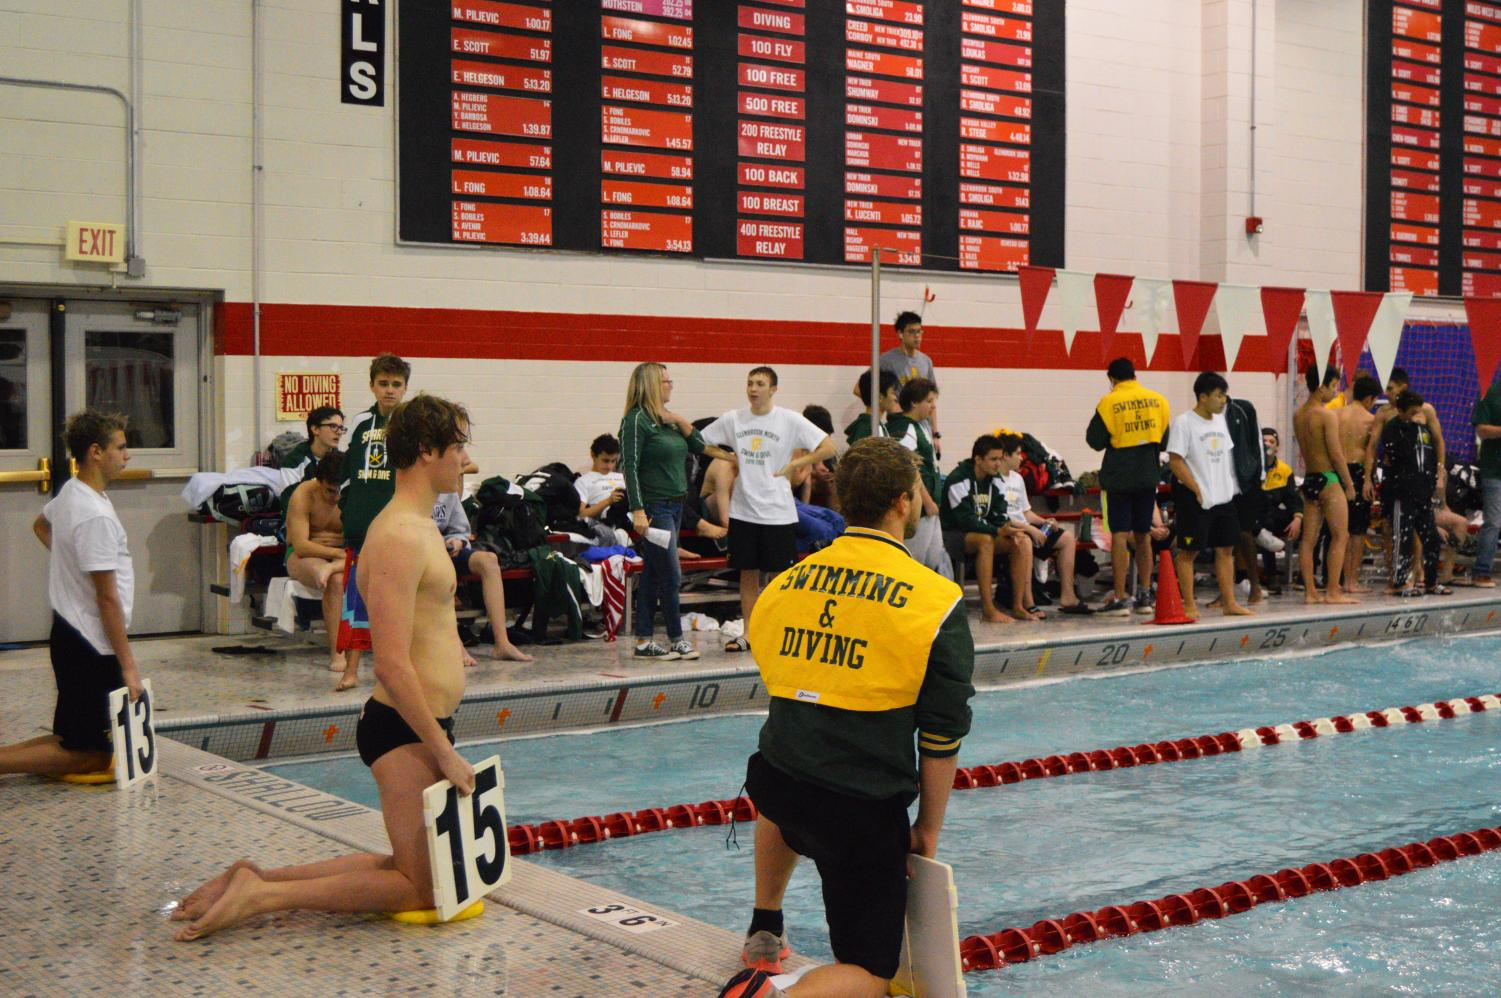 Varsity+swimmers+helping+their+teammates+keep+count+of+their+laps+during+the+grueling+500+yard+freestyle+event.+